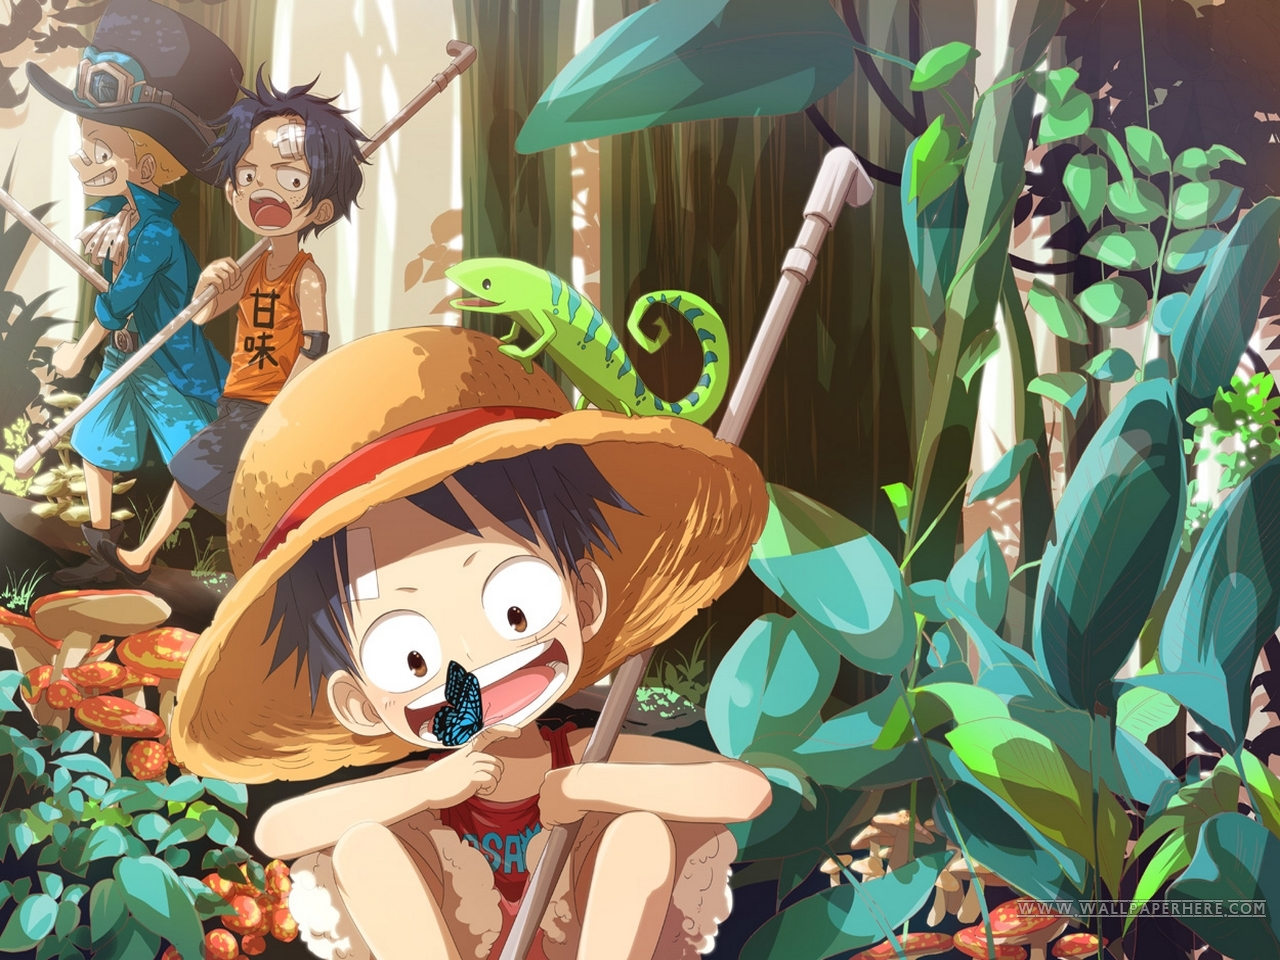 10 Gorgeous One Piece Anime HD Wallpapers   Design Hey Design Hey 1280x960